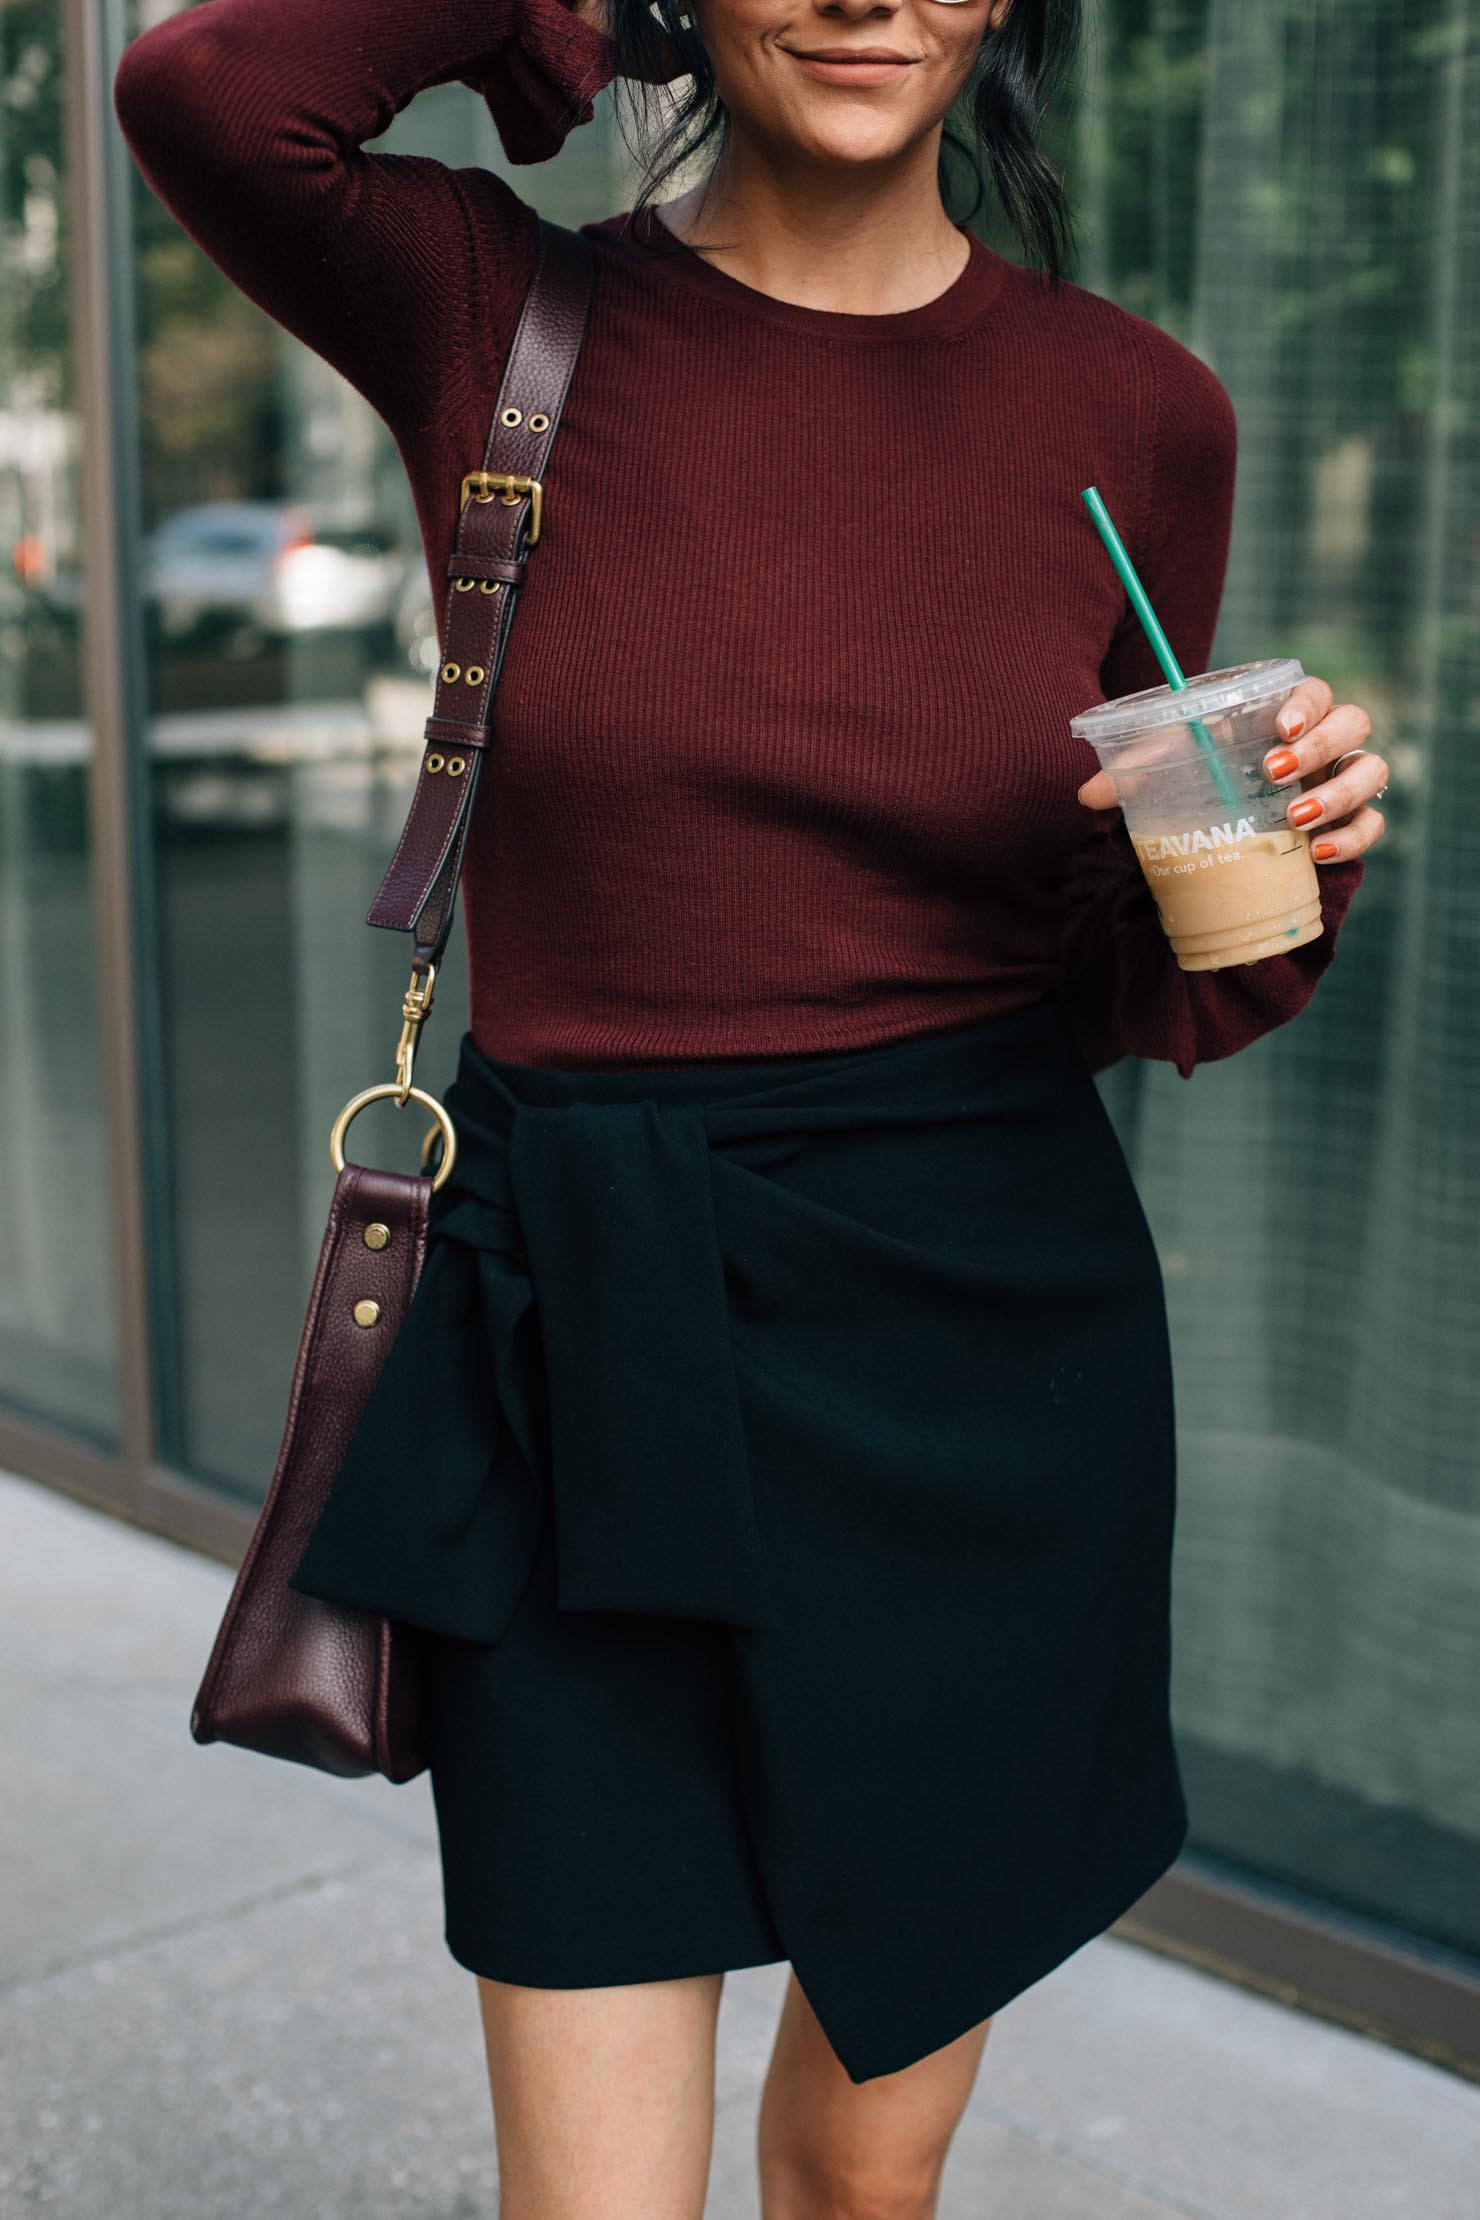 Style blogger Lilly Beltran wearing a casual fall look with a Burgundy sweater and black wrap skirt